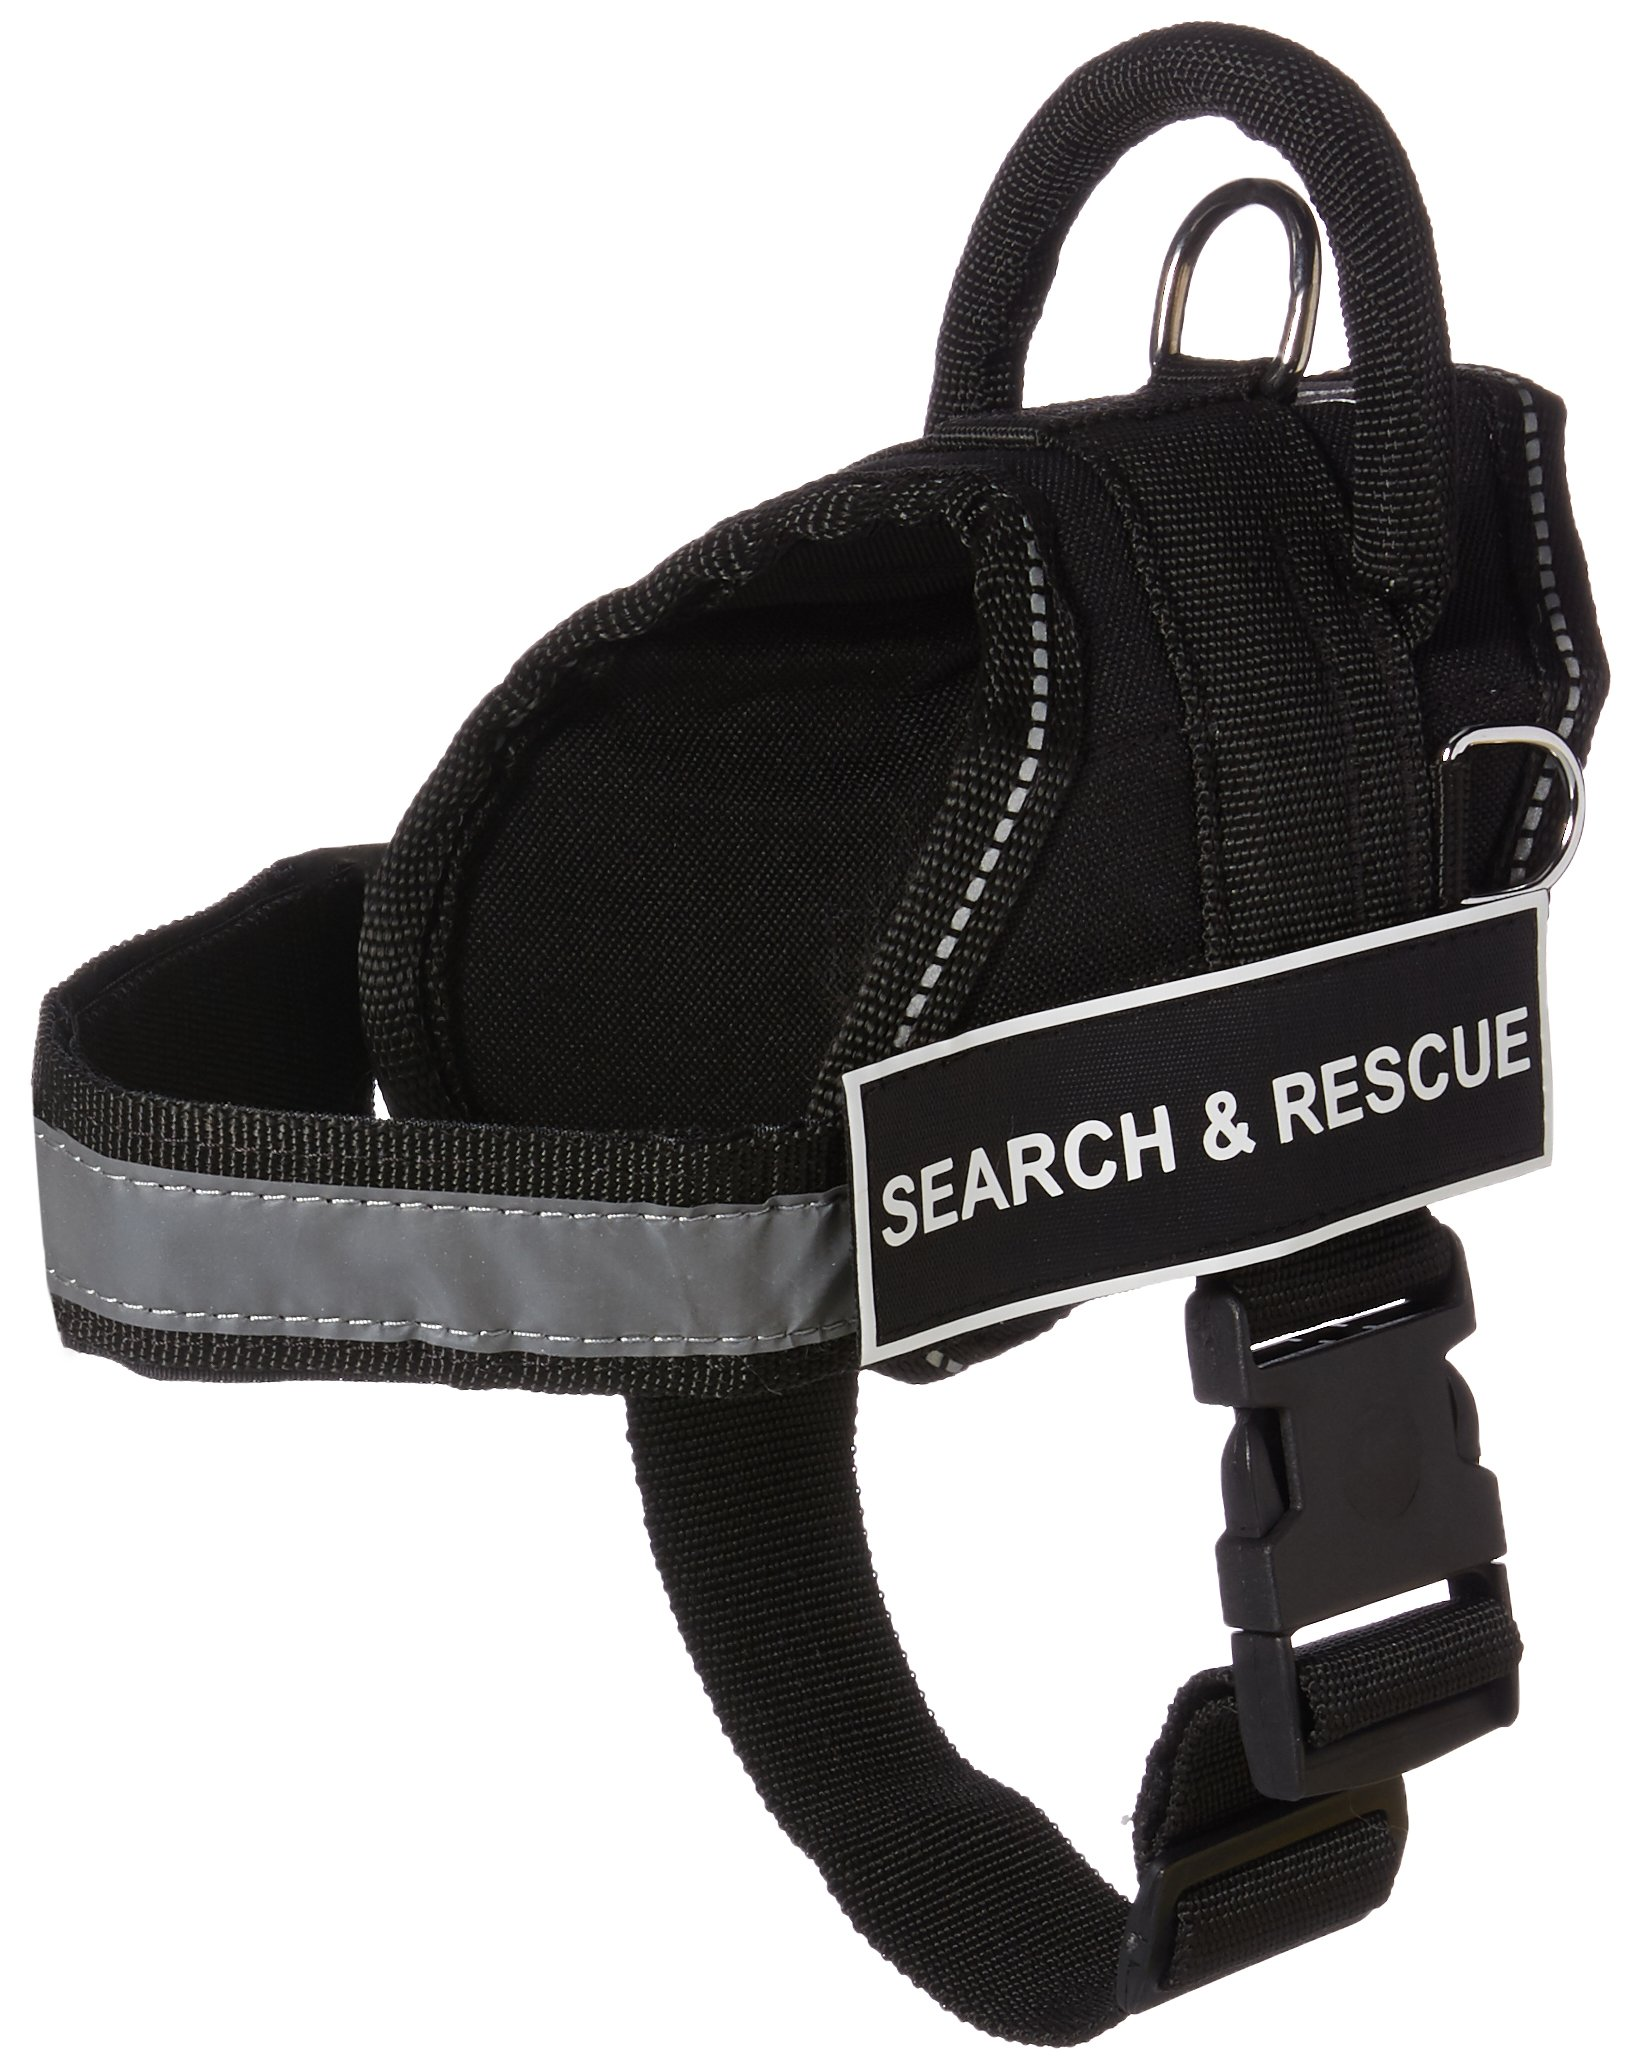 Dean and Tyler Bundle - One ''DT Works'' Harness, Search and Rescue, XSmall (21'' - 26'') + One ''Padded Puppy'' Leash, 6 FT Stainless Steel Snap - Black